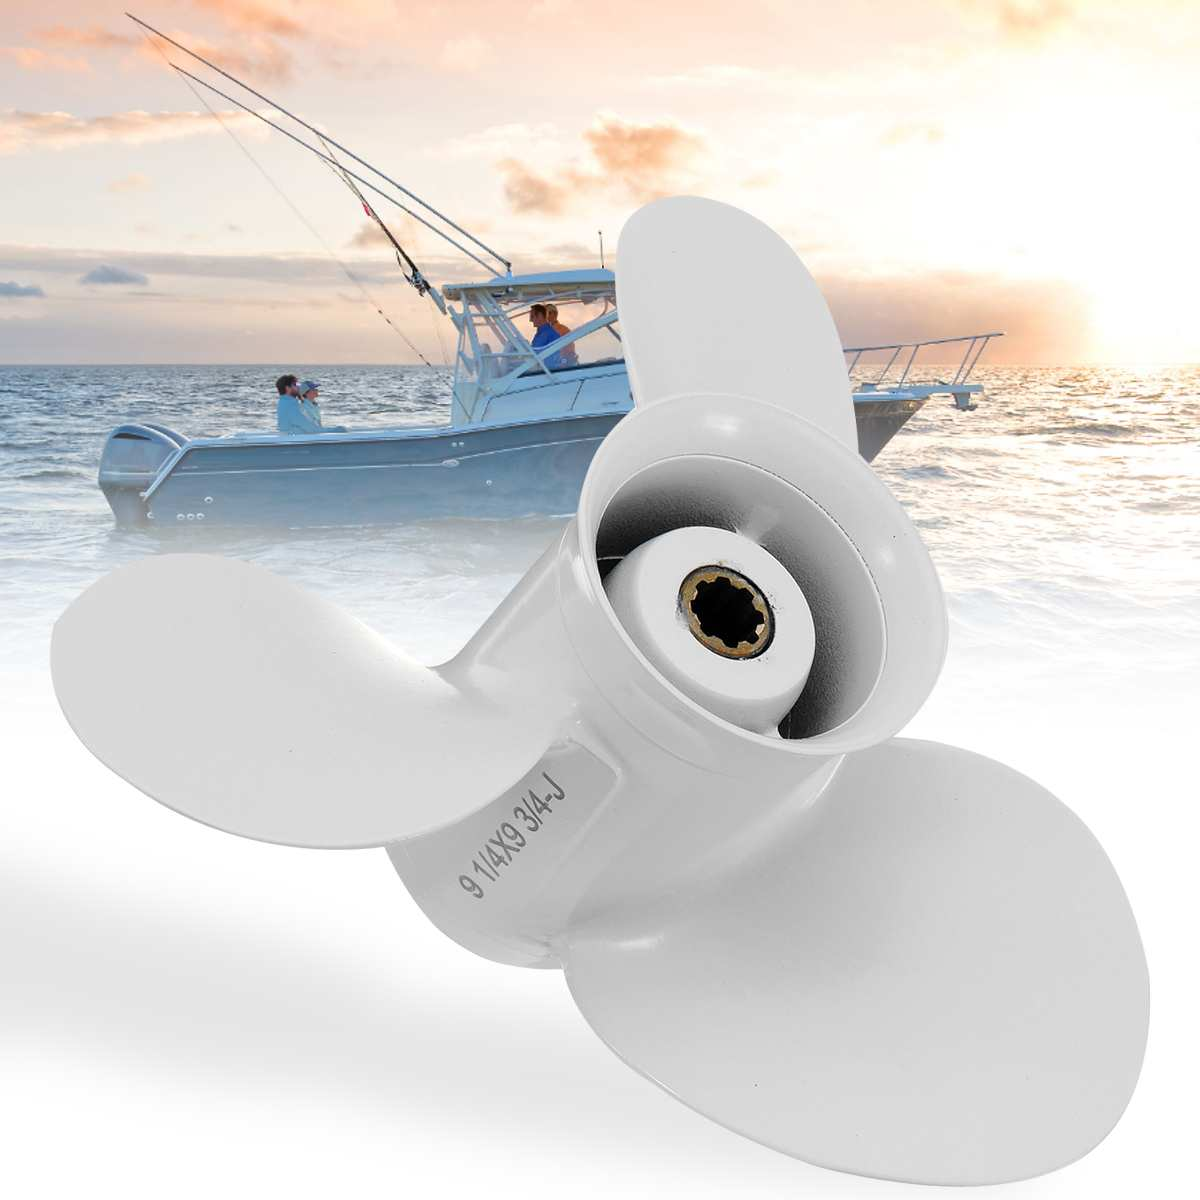 Marine Propeller 683-45952-00-el 9 1/4 X 9 3/4 Boat Outboard Propeller For Yamaha 9.9-15hp Aluminum Alloy 3 Blades 8 Spline Tooths White To Adopt Advanced Technology